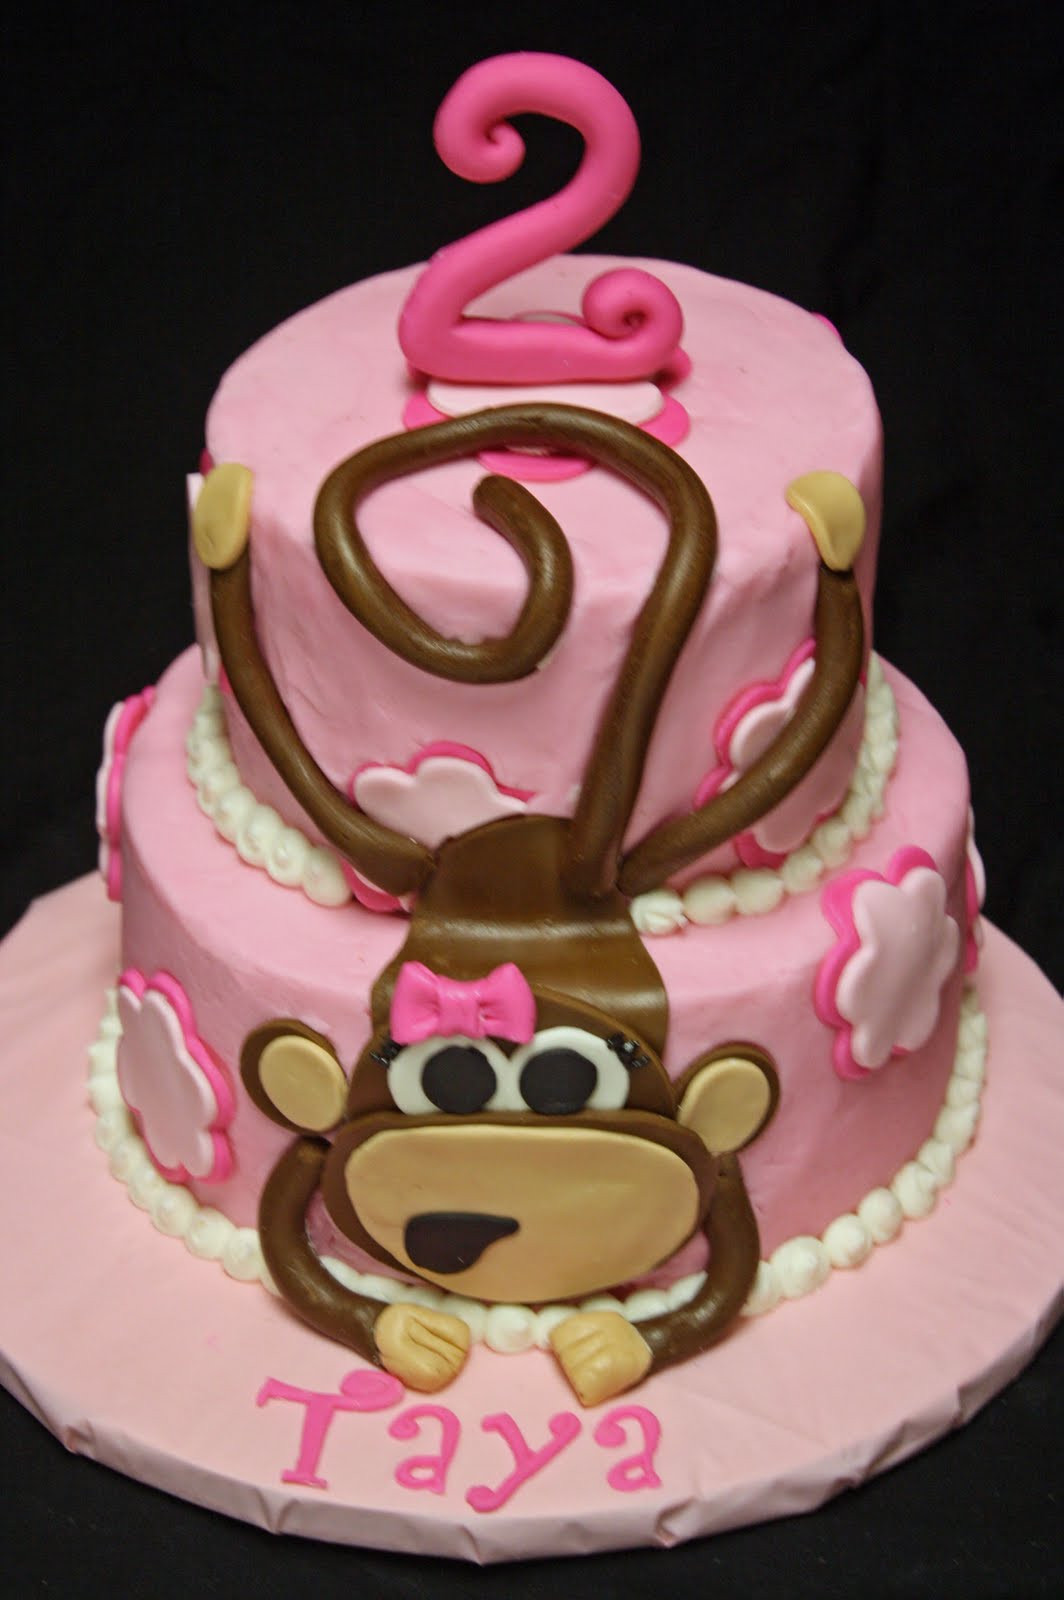 Best ideas about Monkey Birthday Cake . Save or Pin Monkey Cake Recipe — Dishmaps Now.